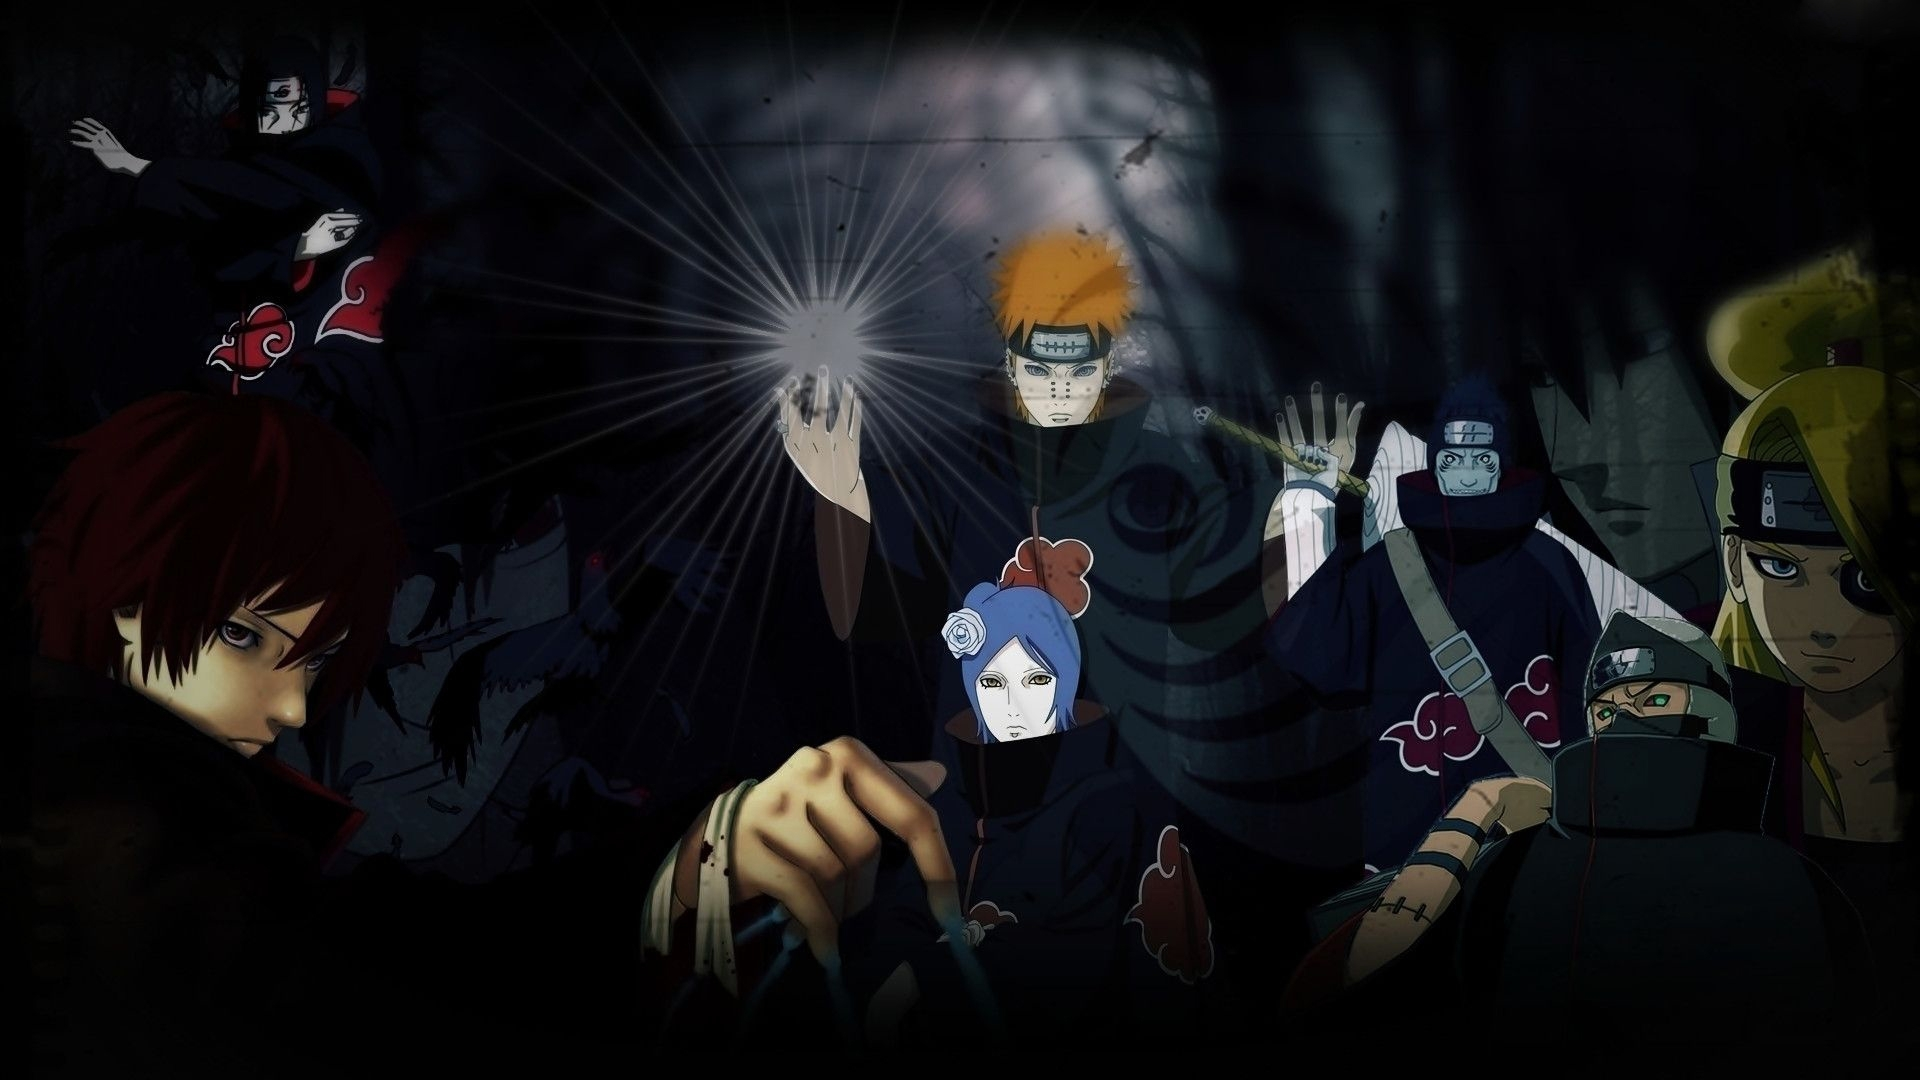 desktop naruto shippuden hd wallpapers free download. - media file